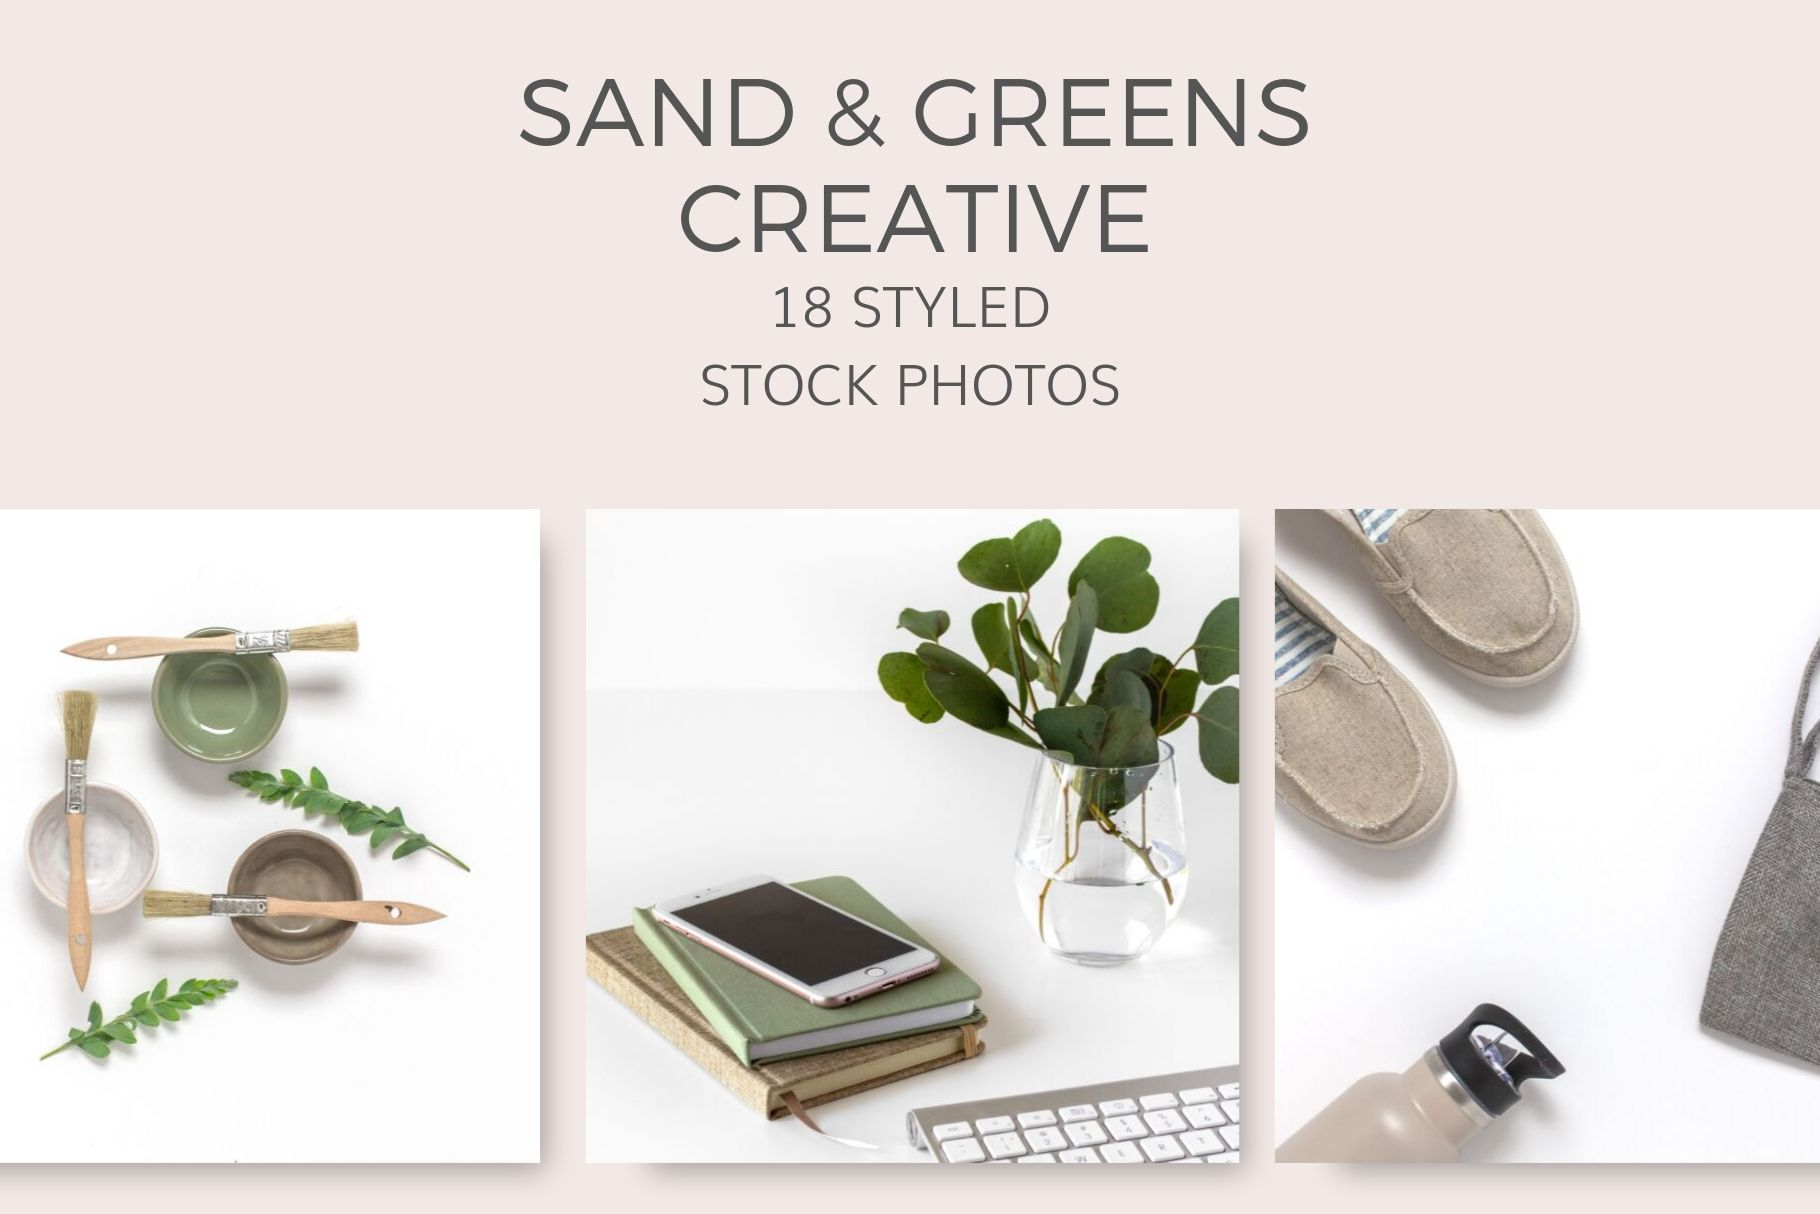 tan sand and green creative Styled Stock Photos by Ivory MIx(4)